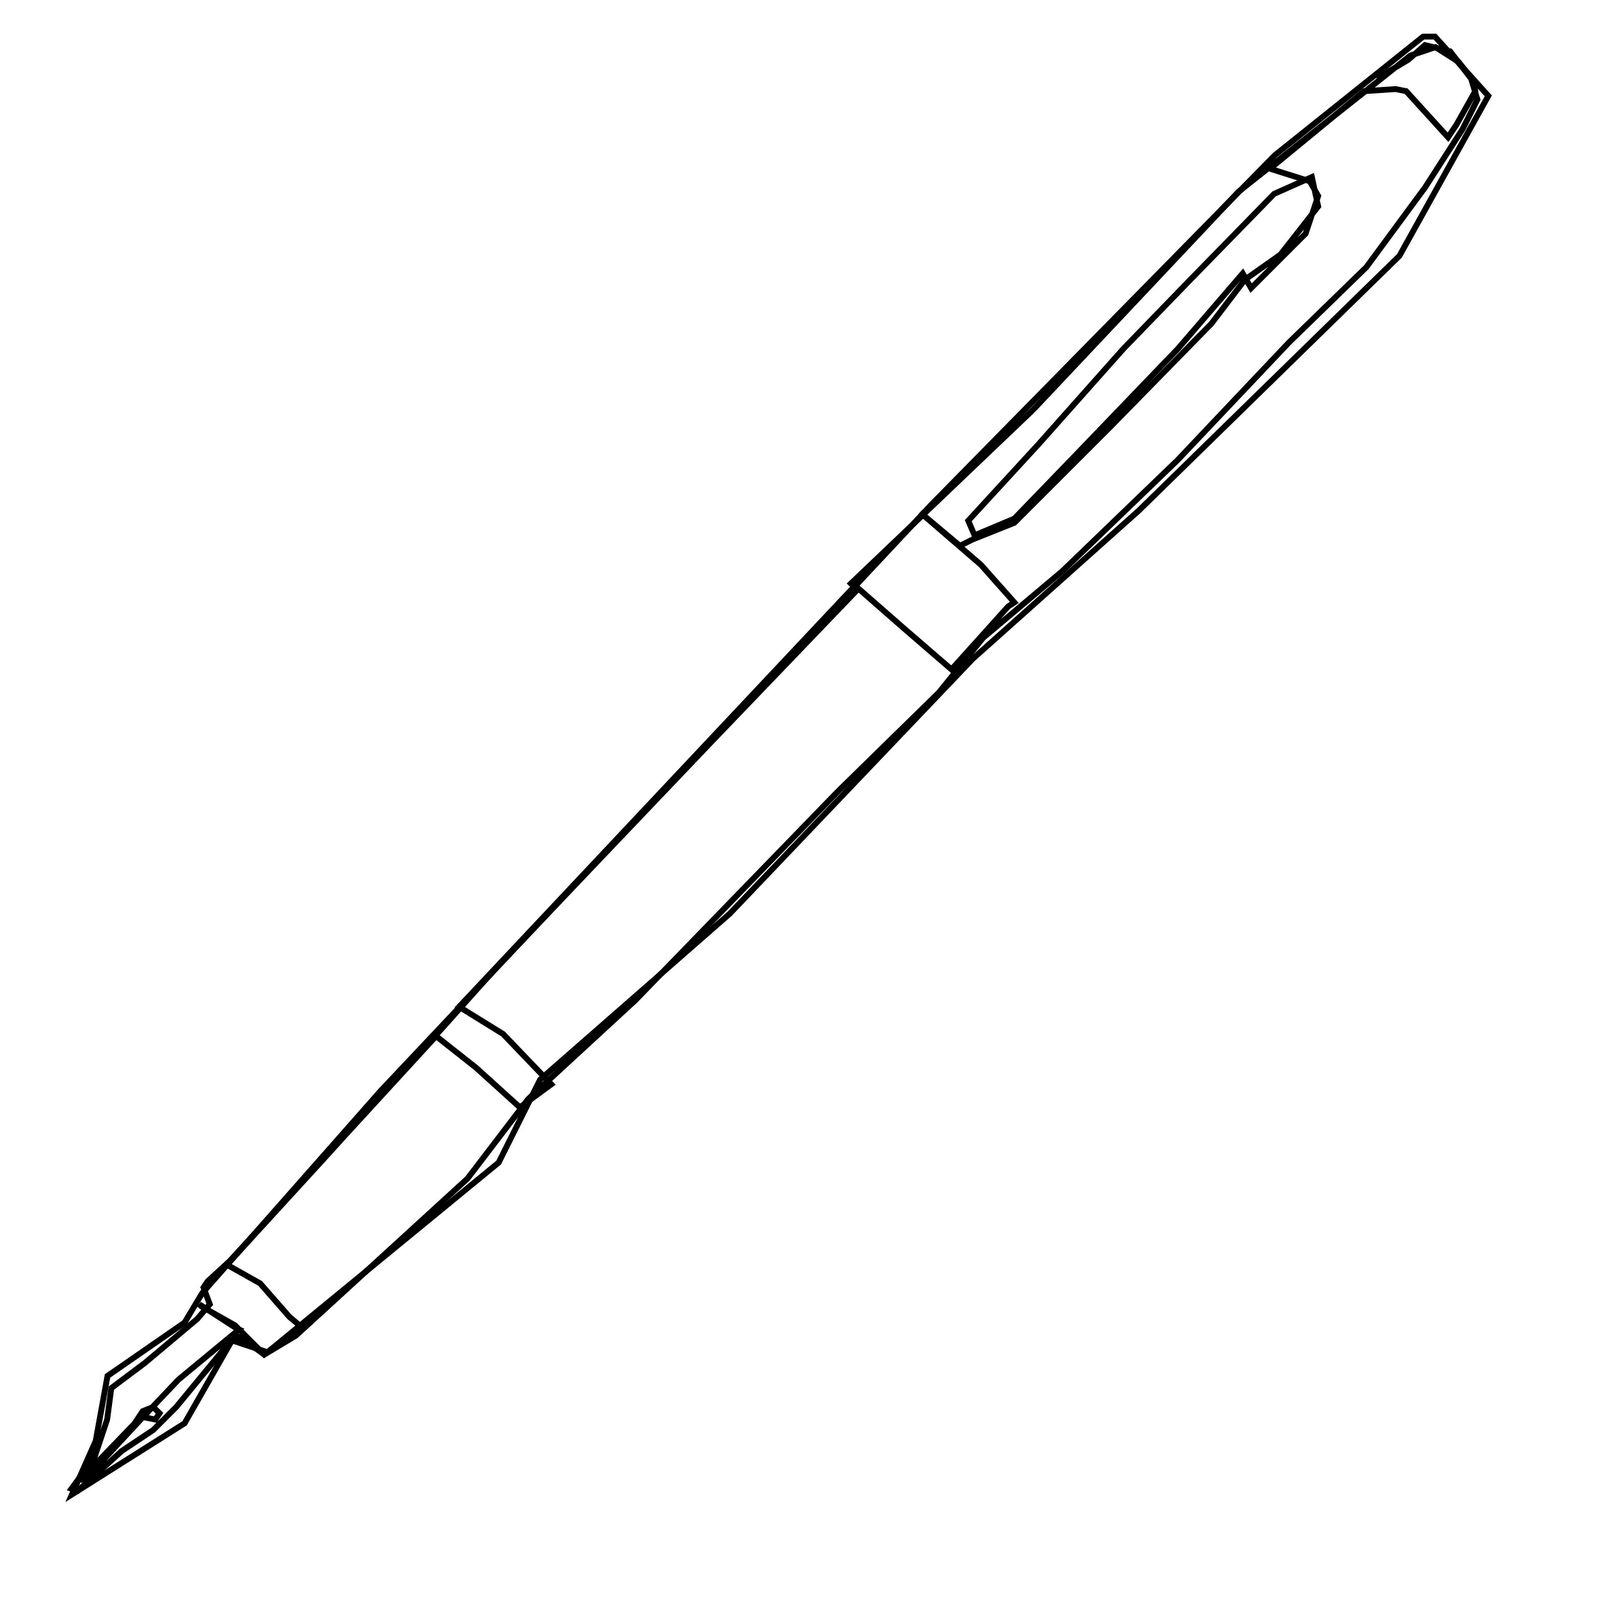 Free Pens Cliparts, Download Free Clip Art, Free Clip Art on.